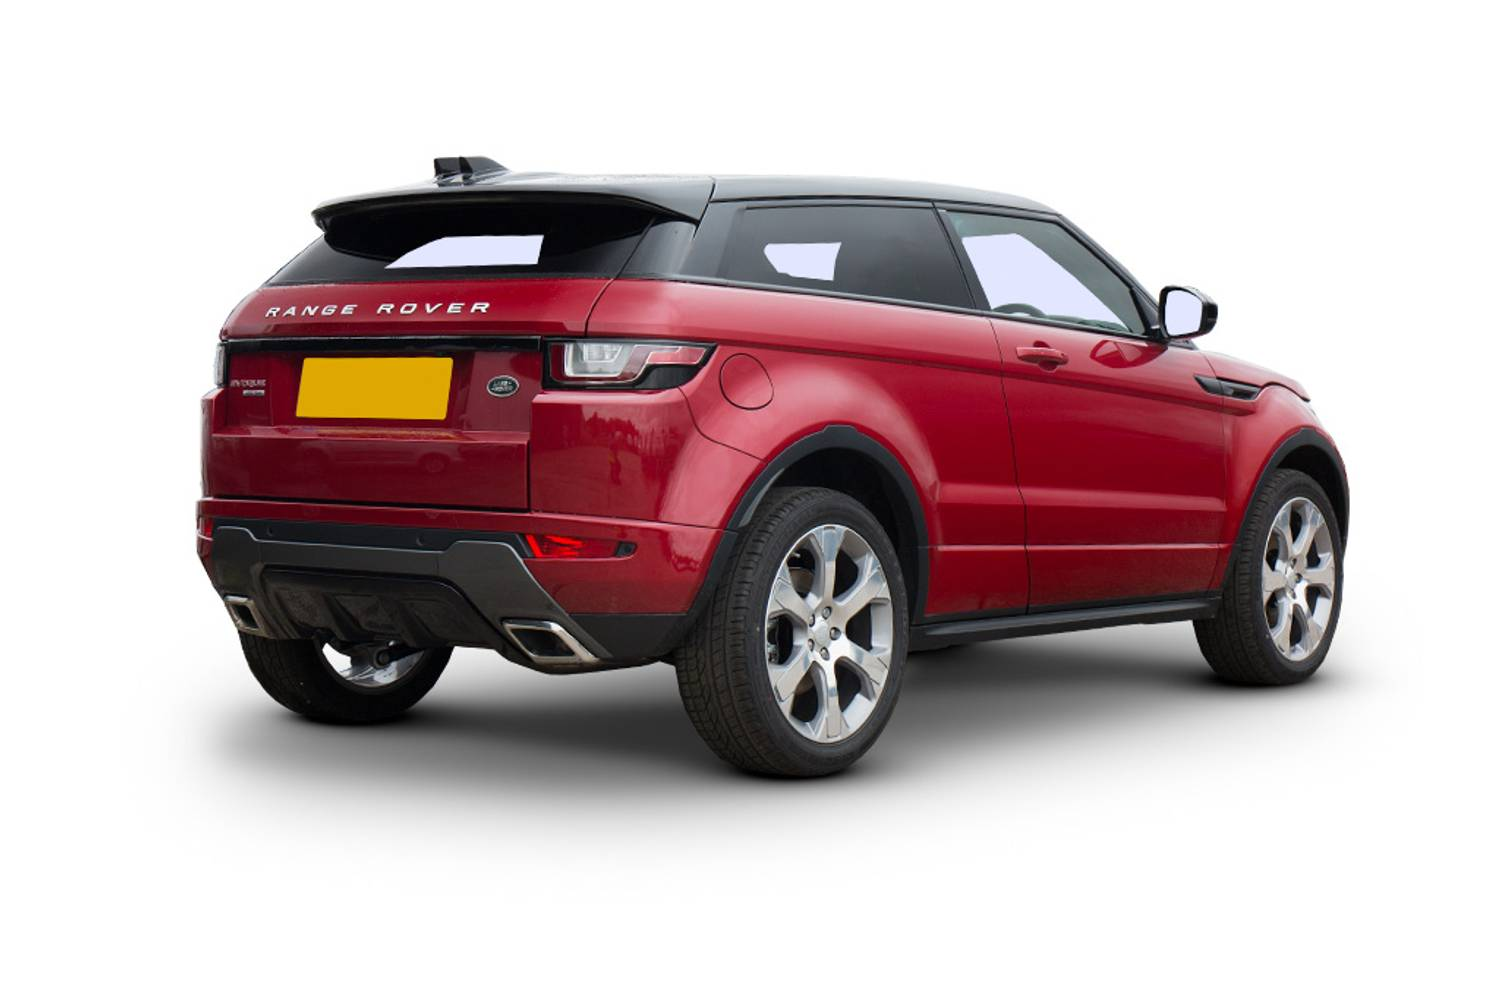 new range rover evoque diesel coupe 2 0 td4 se tech 3 door auto 2015 for sale. Black Bedroom Furniture Sets. Home Design Ideas